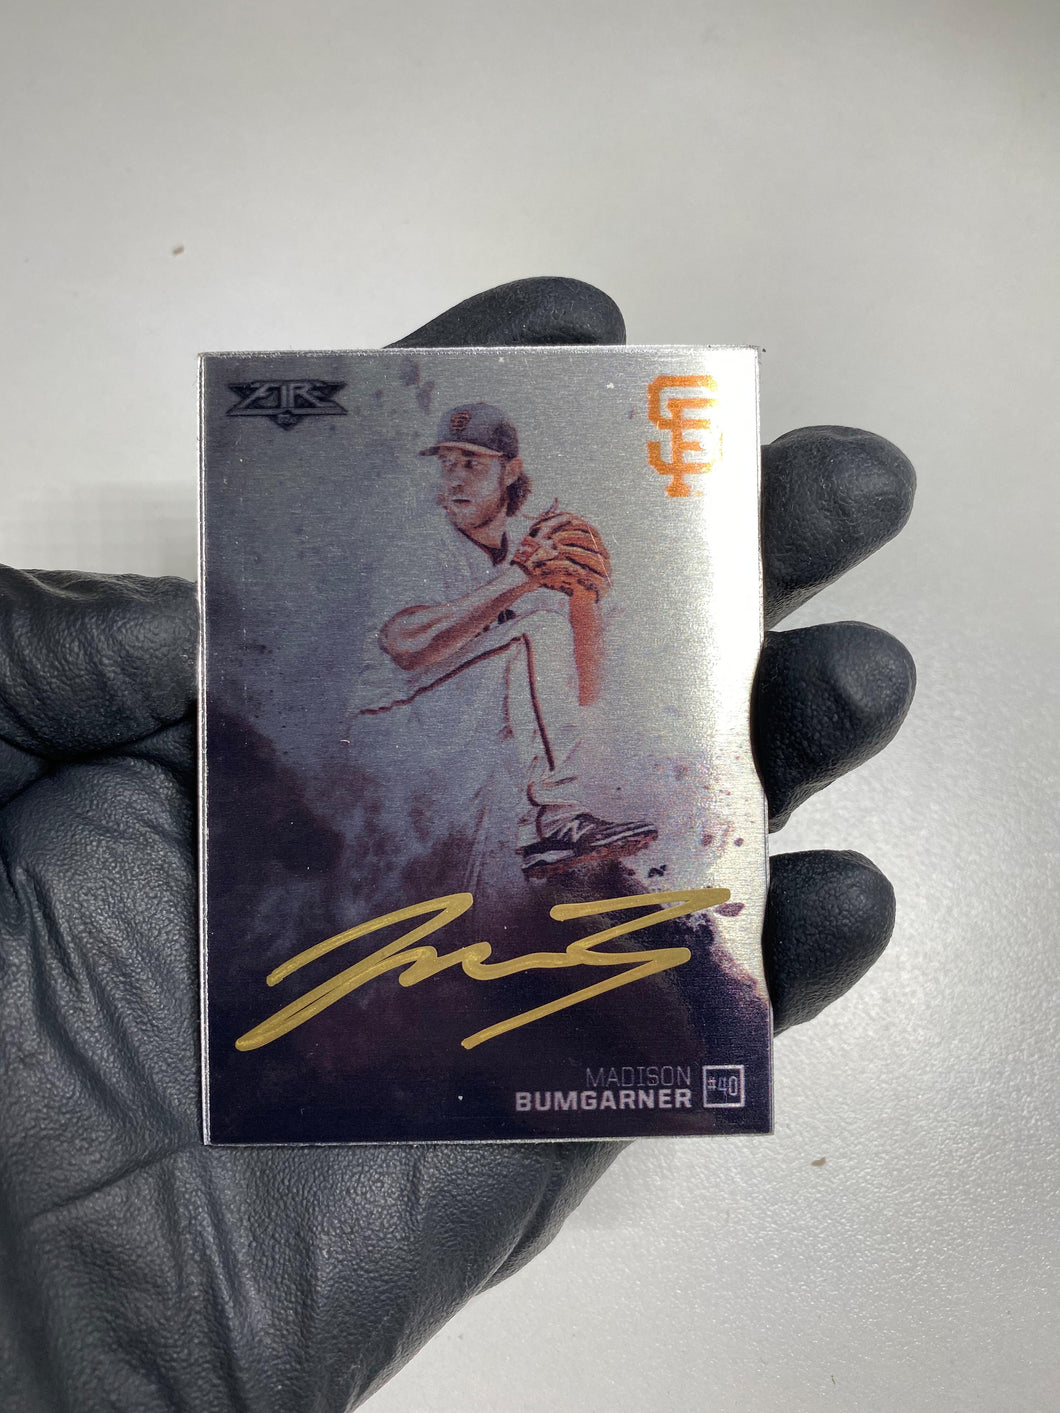 Madison Bumgarner - 1/1 TYSON BECK X TOPPS AUTOGRAPHED 2015 FIRE METAL CARD 🔥